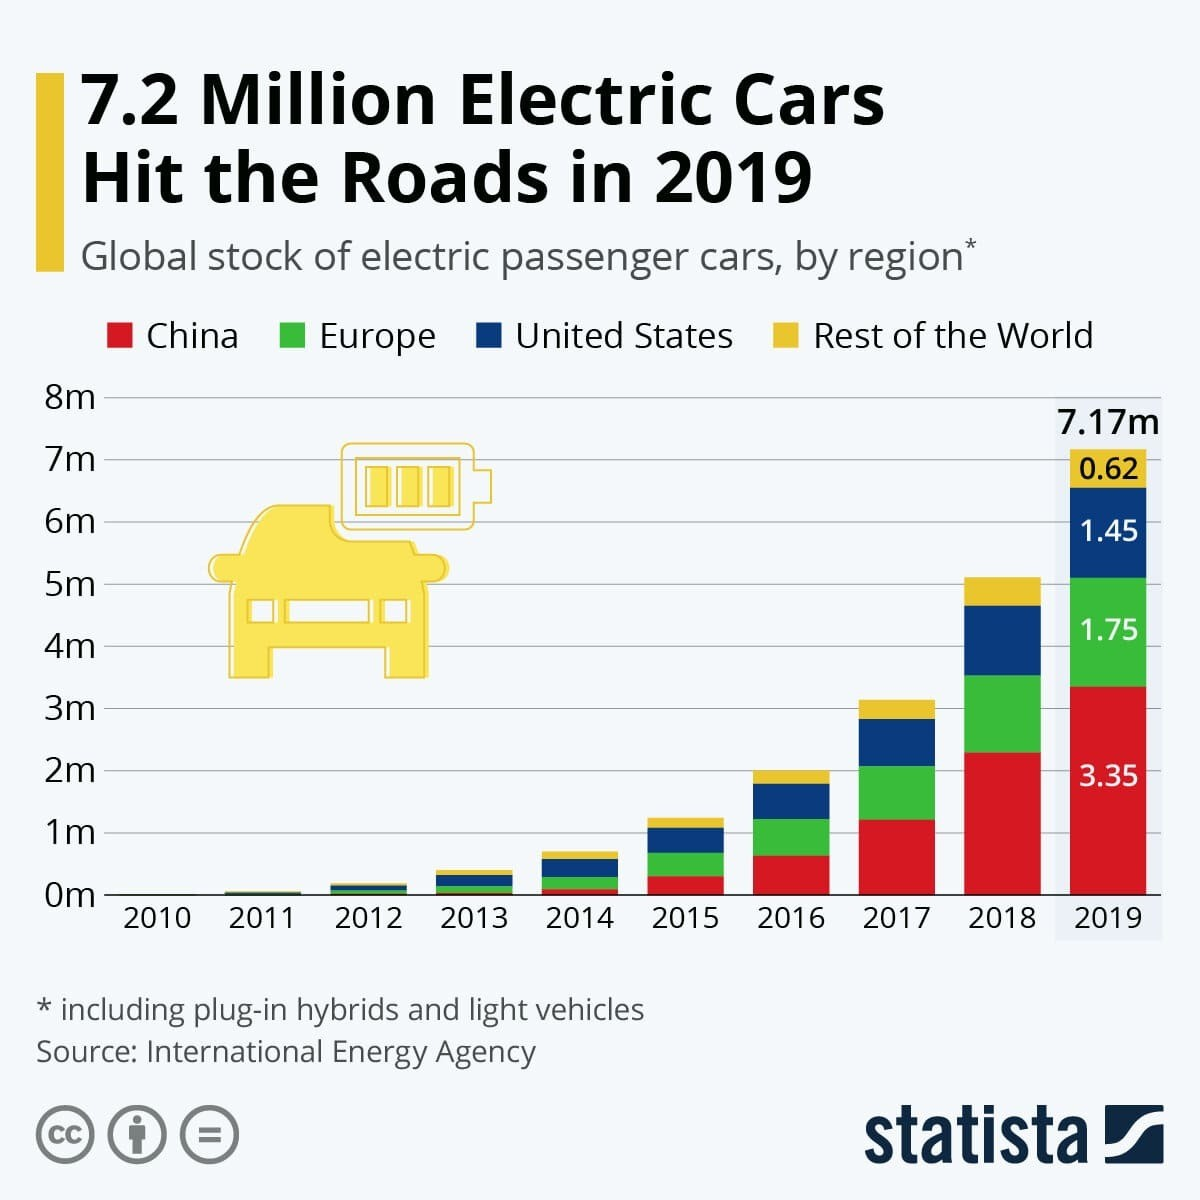 7.2 Million Electric Cars Hit the Roads in 2019